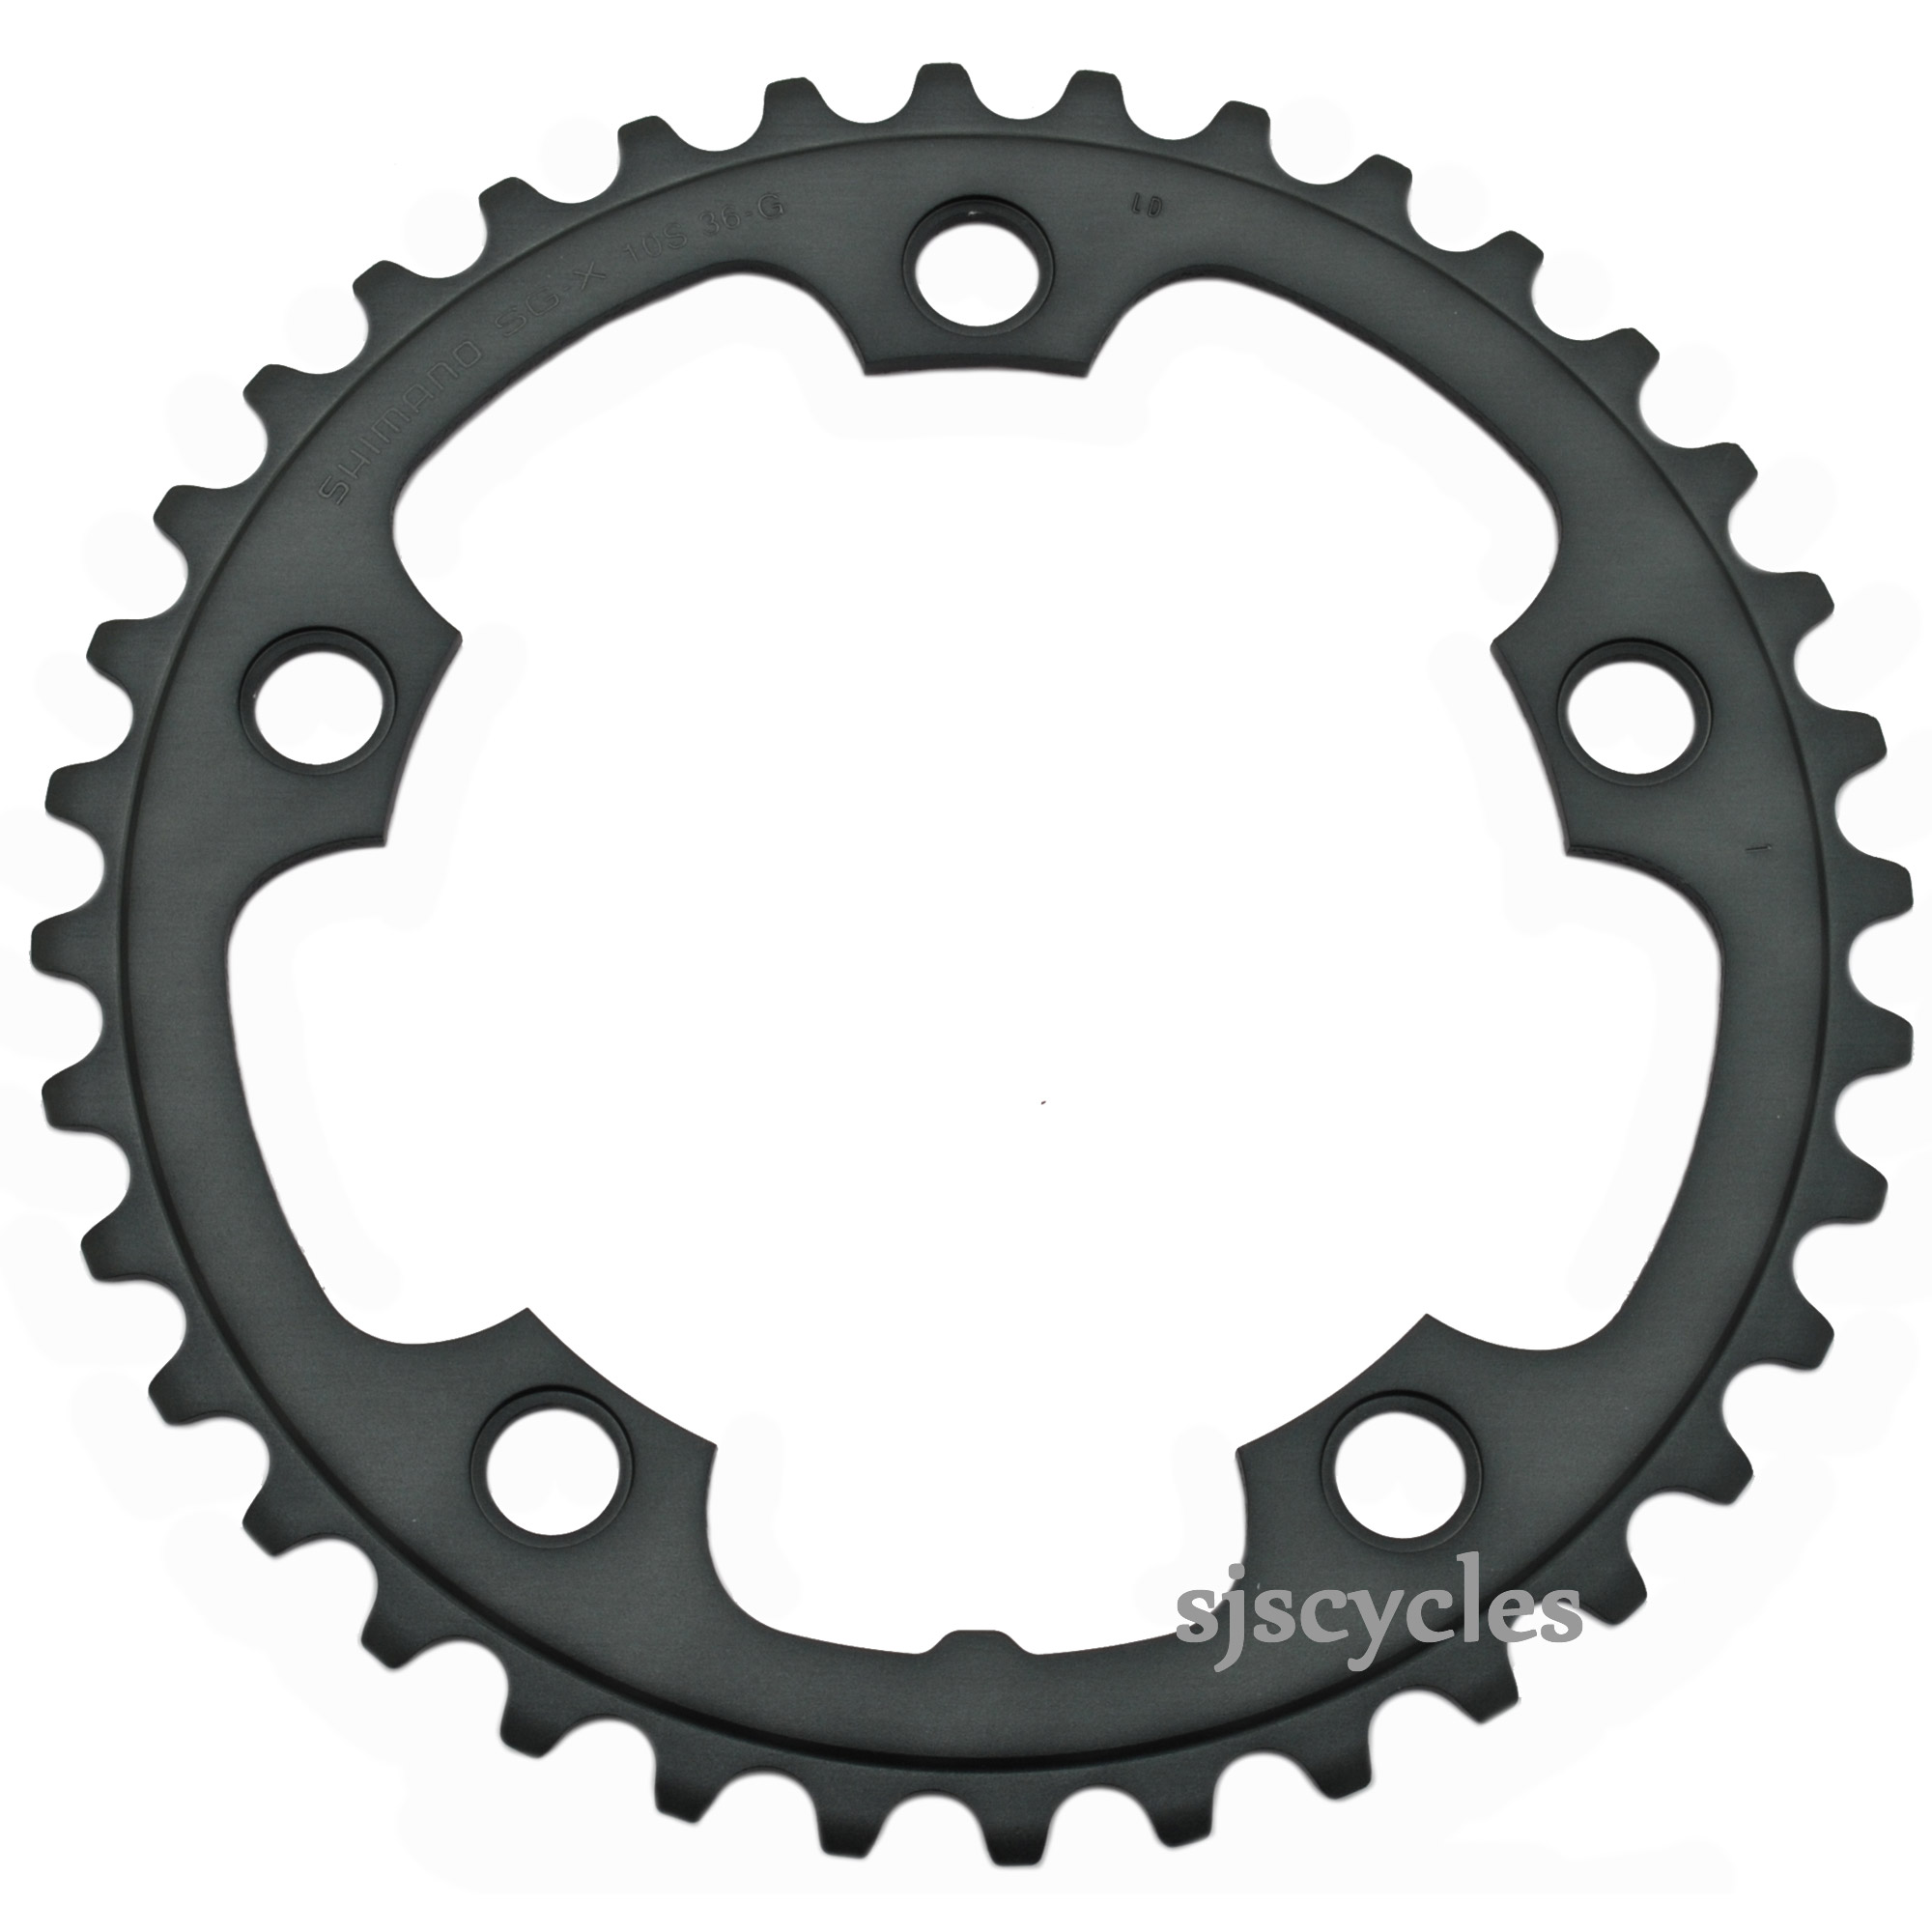 Shimano FC-CX70 Chainring 36T fits 46-36 crank 110mm BCD Double